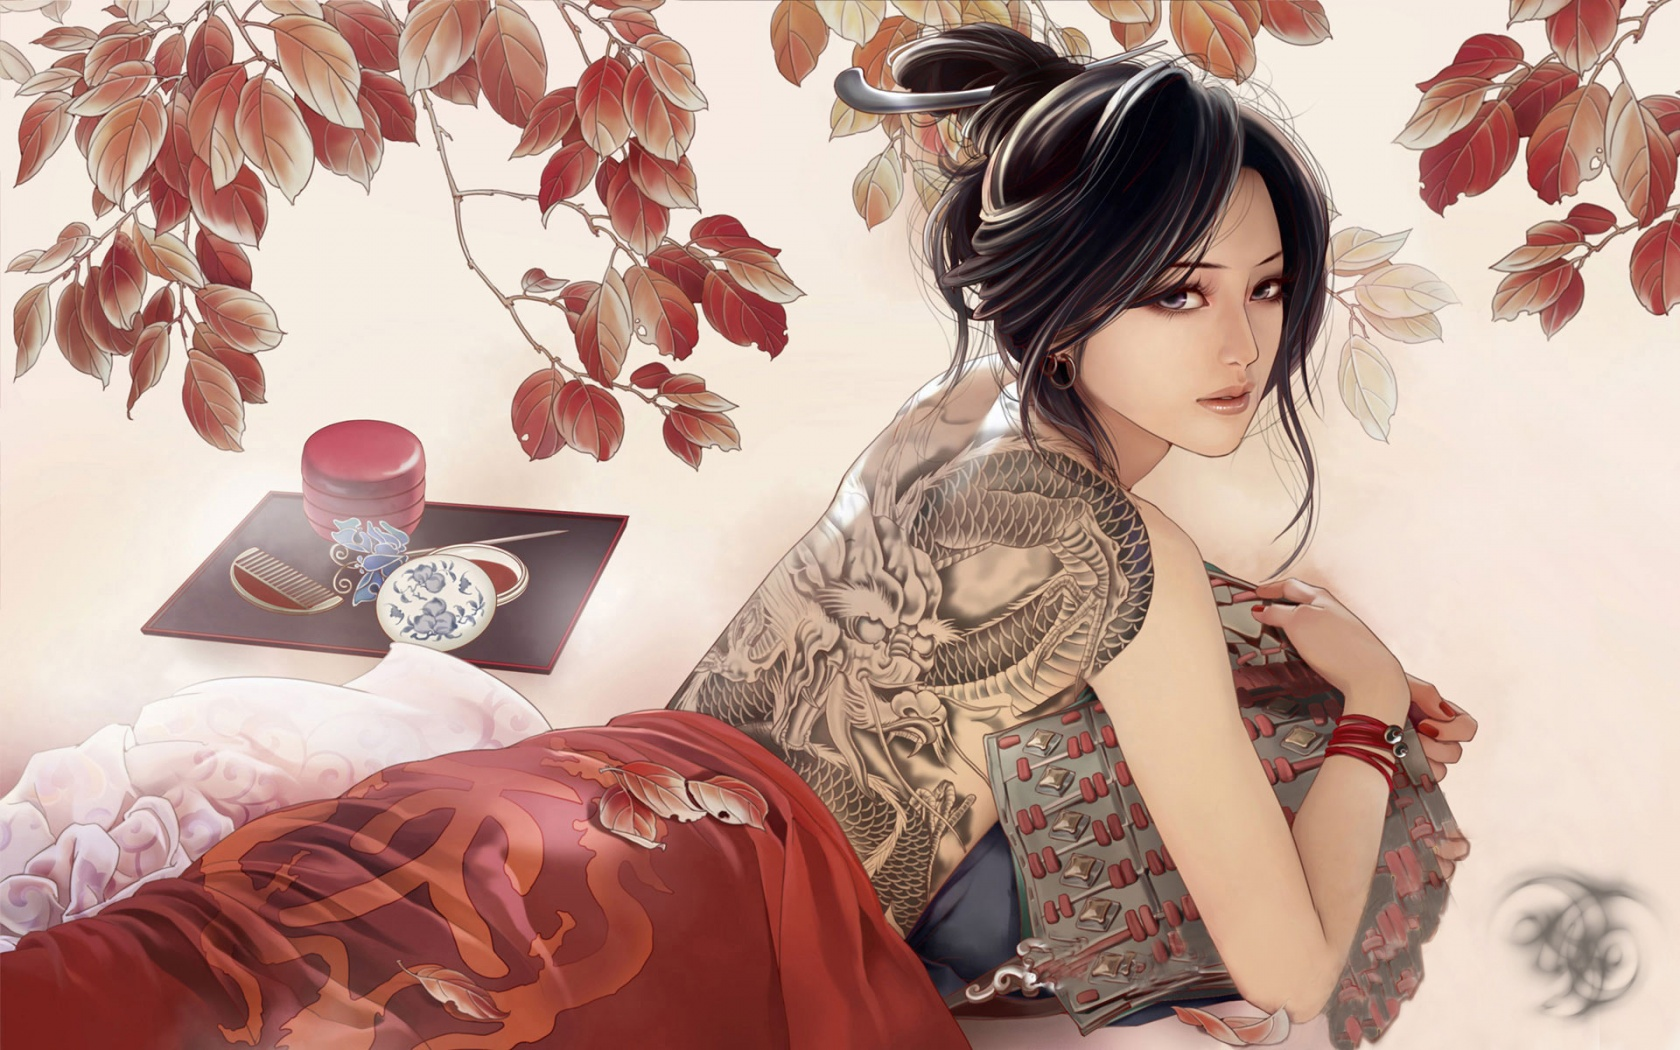 Tattooed anime girl 1680 x 1050 download close